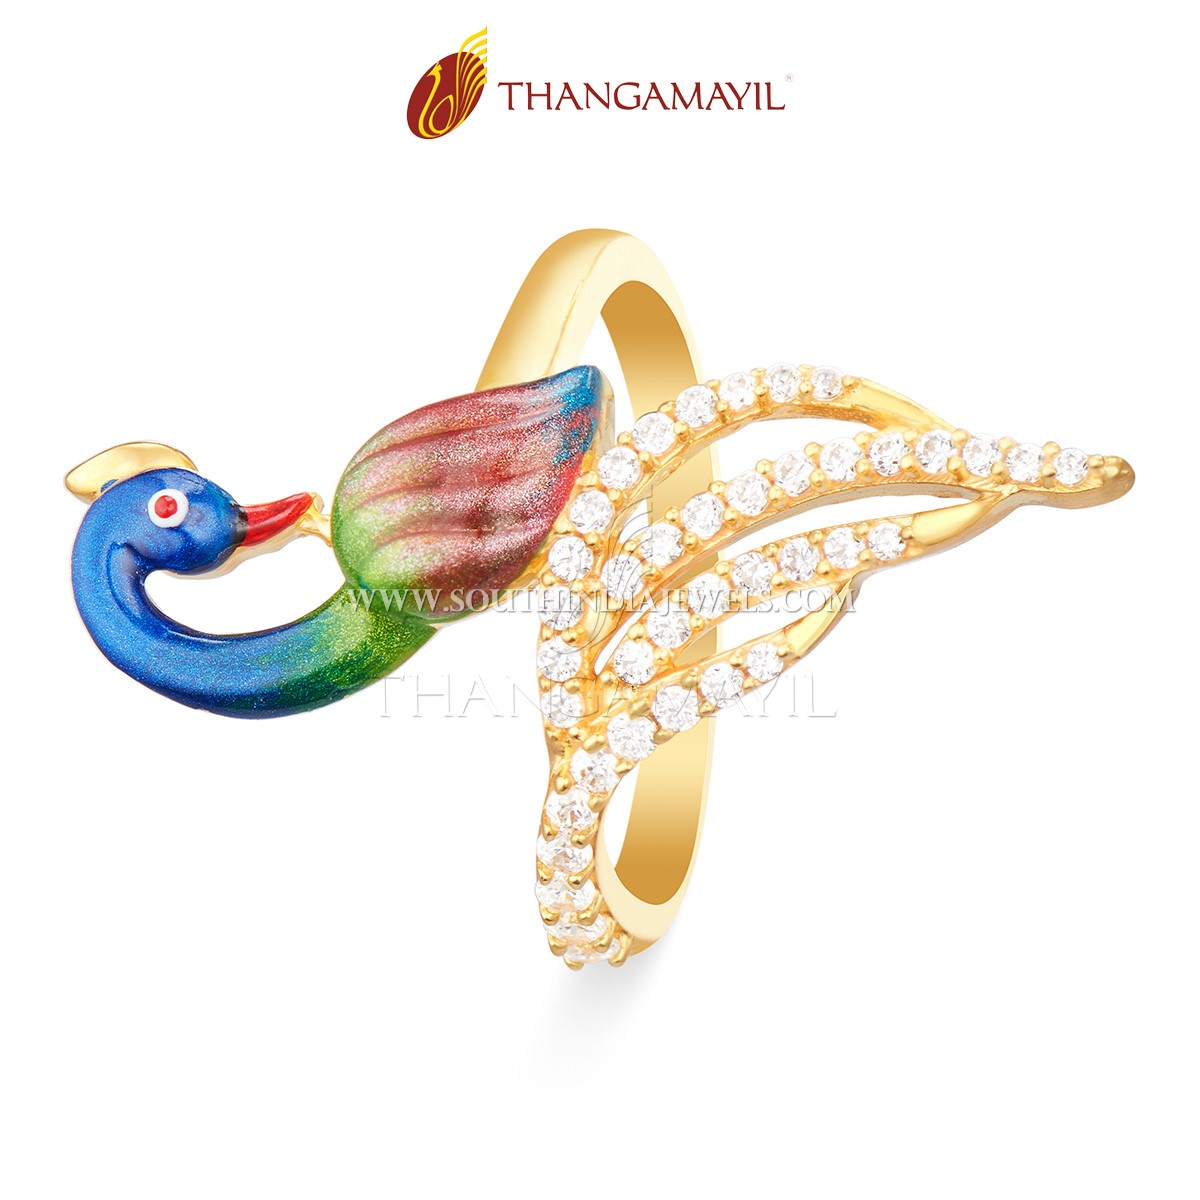 Stylish Gold Ring From Thangamayil Jewellery